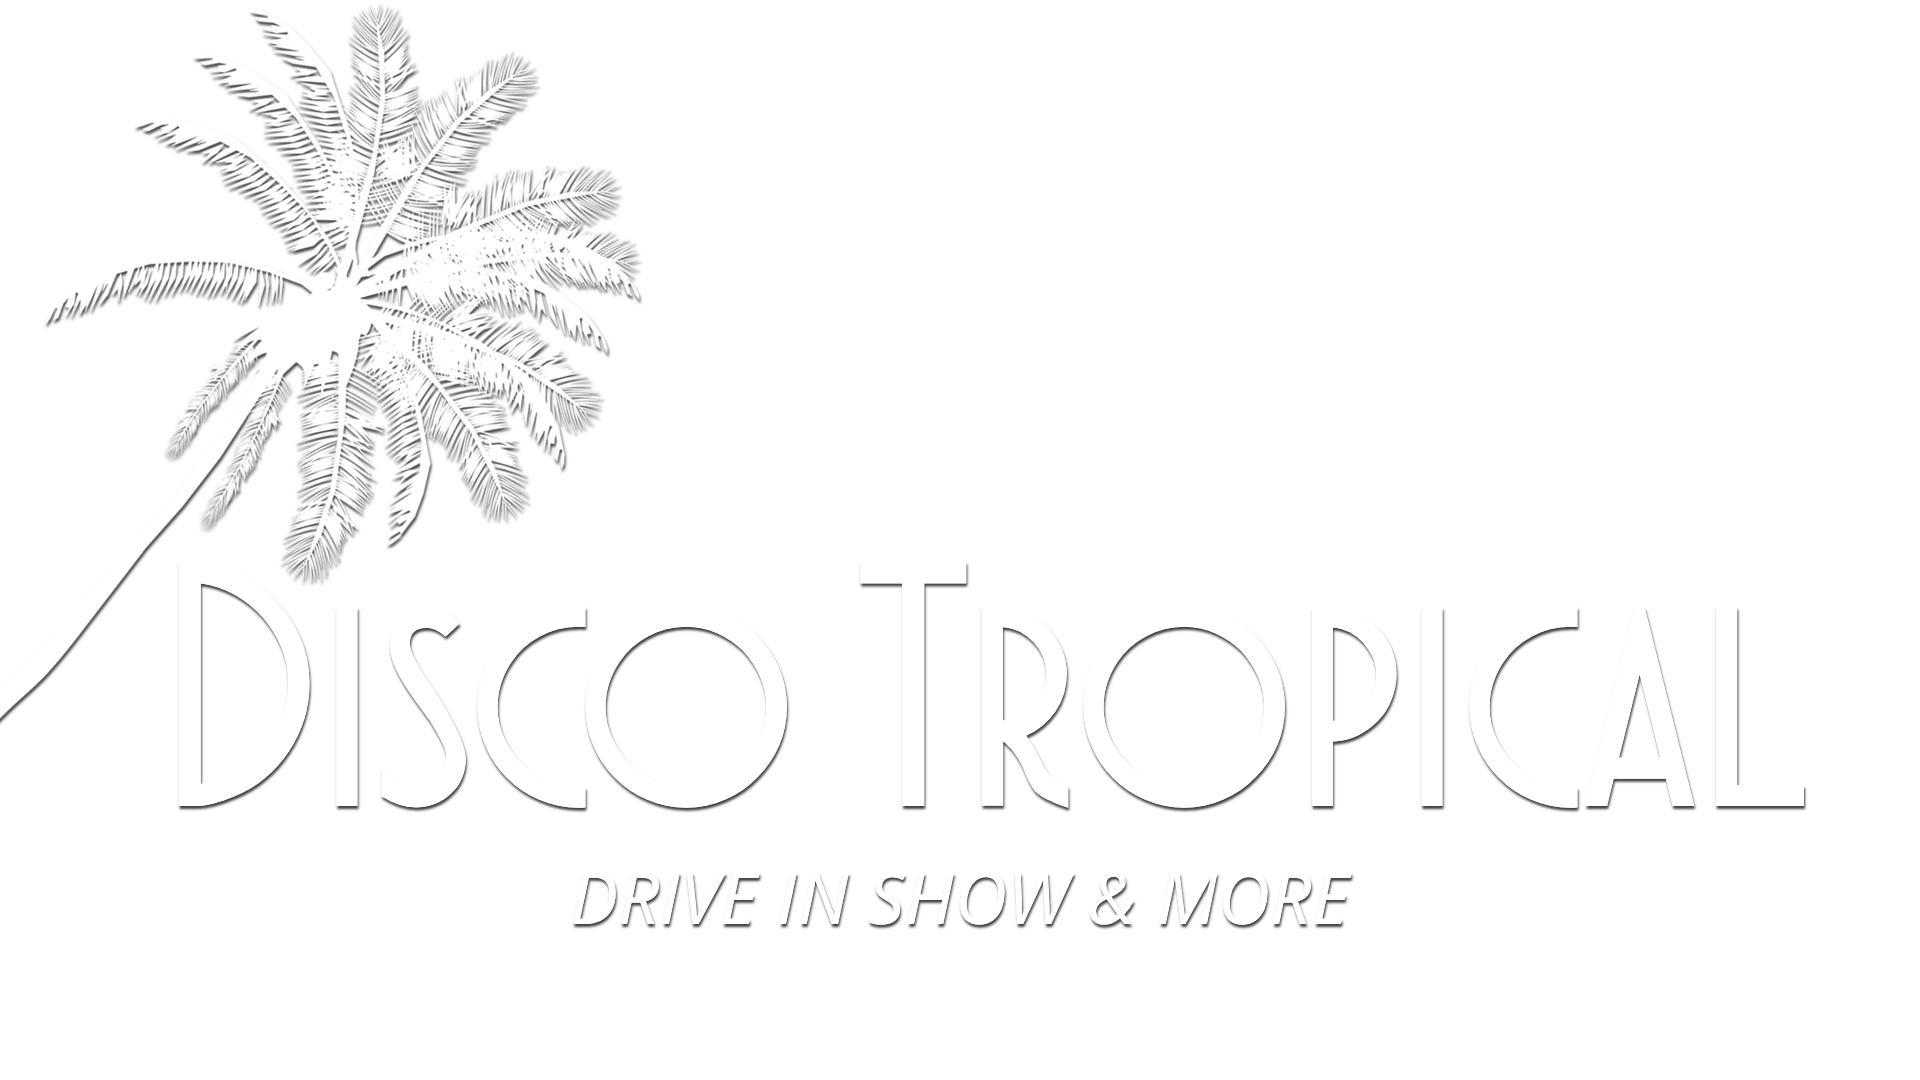 Disco Tropical Maastricht